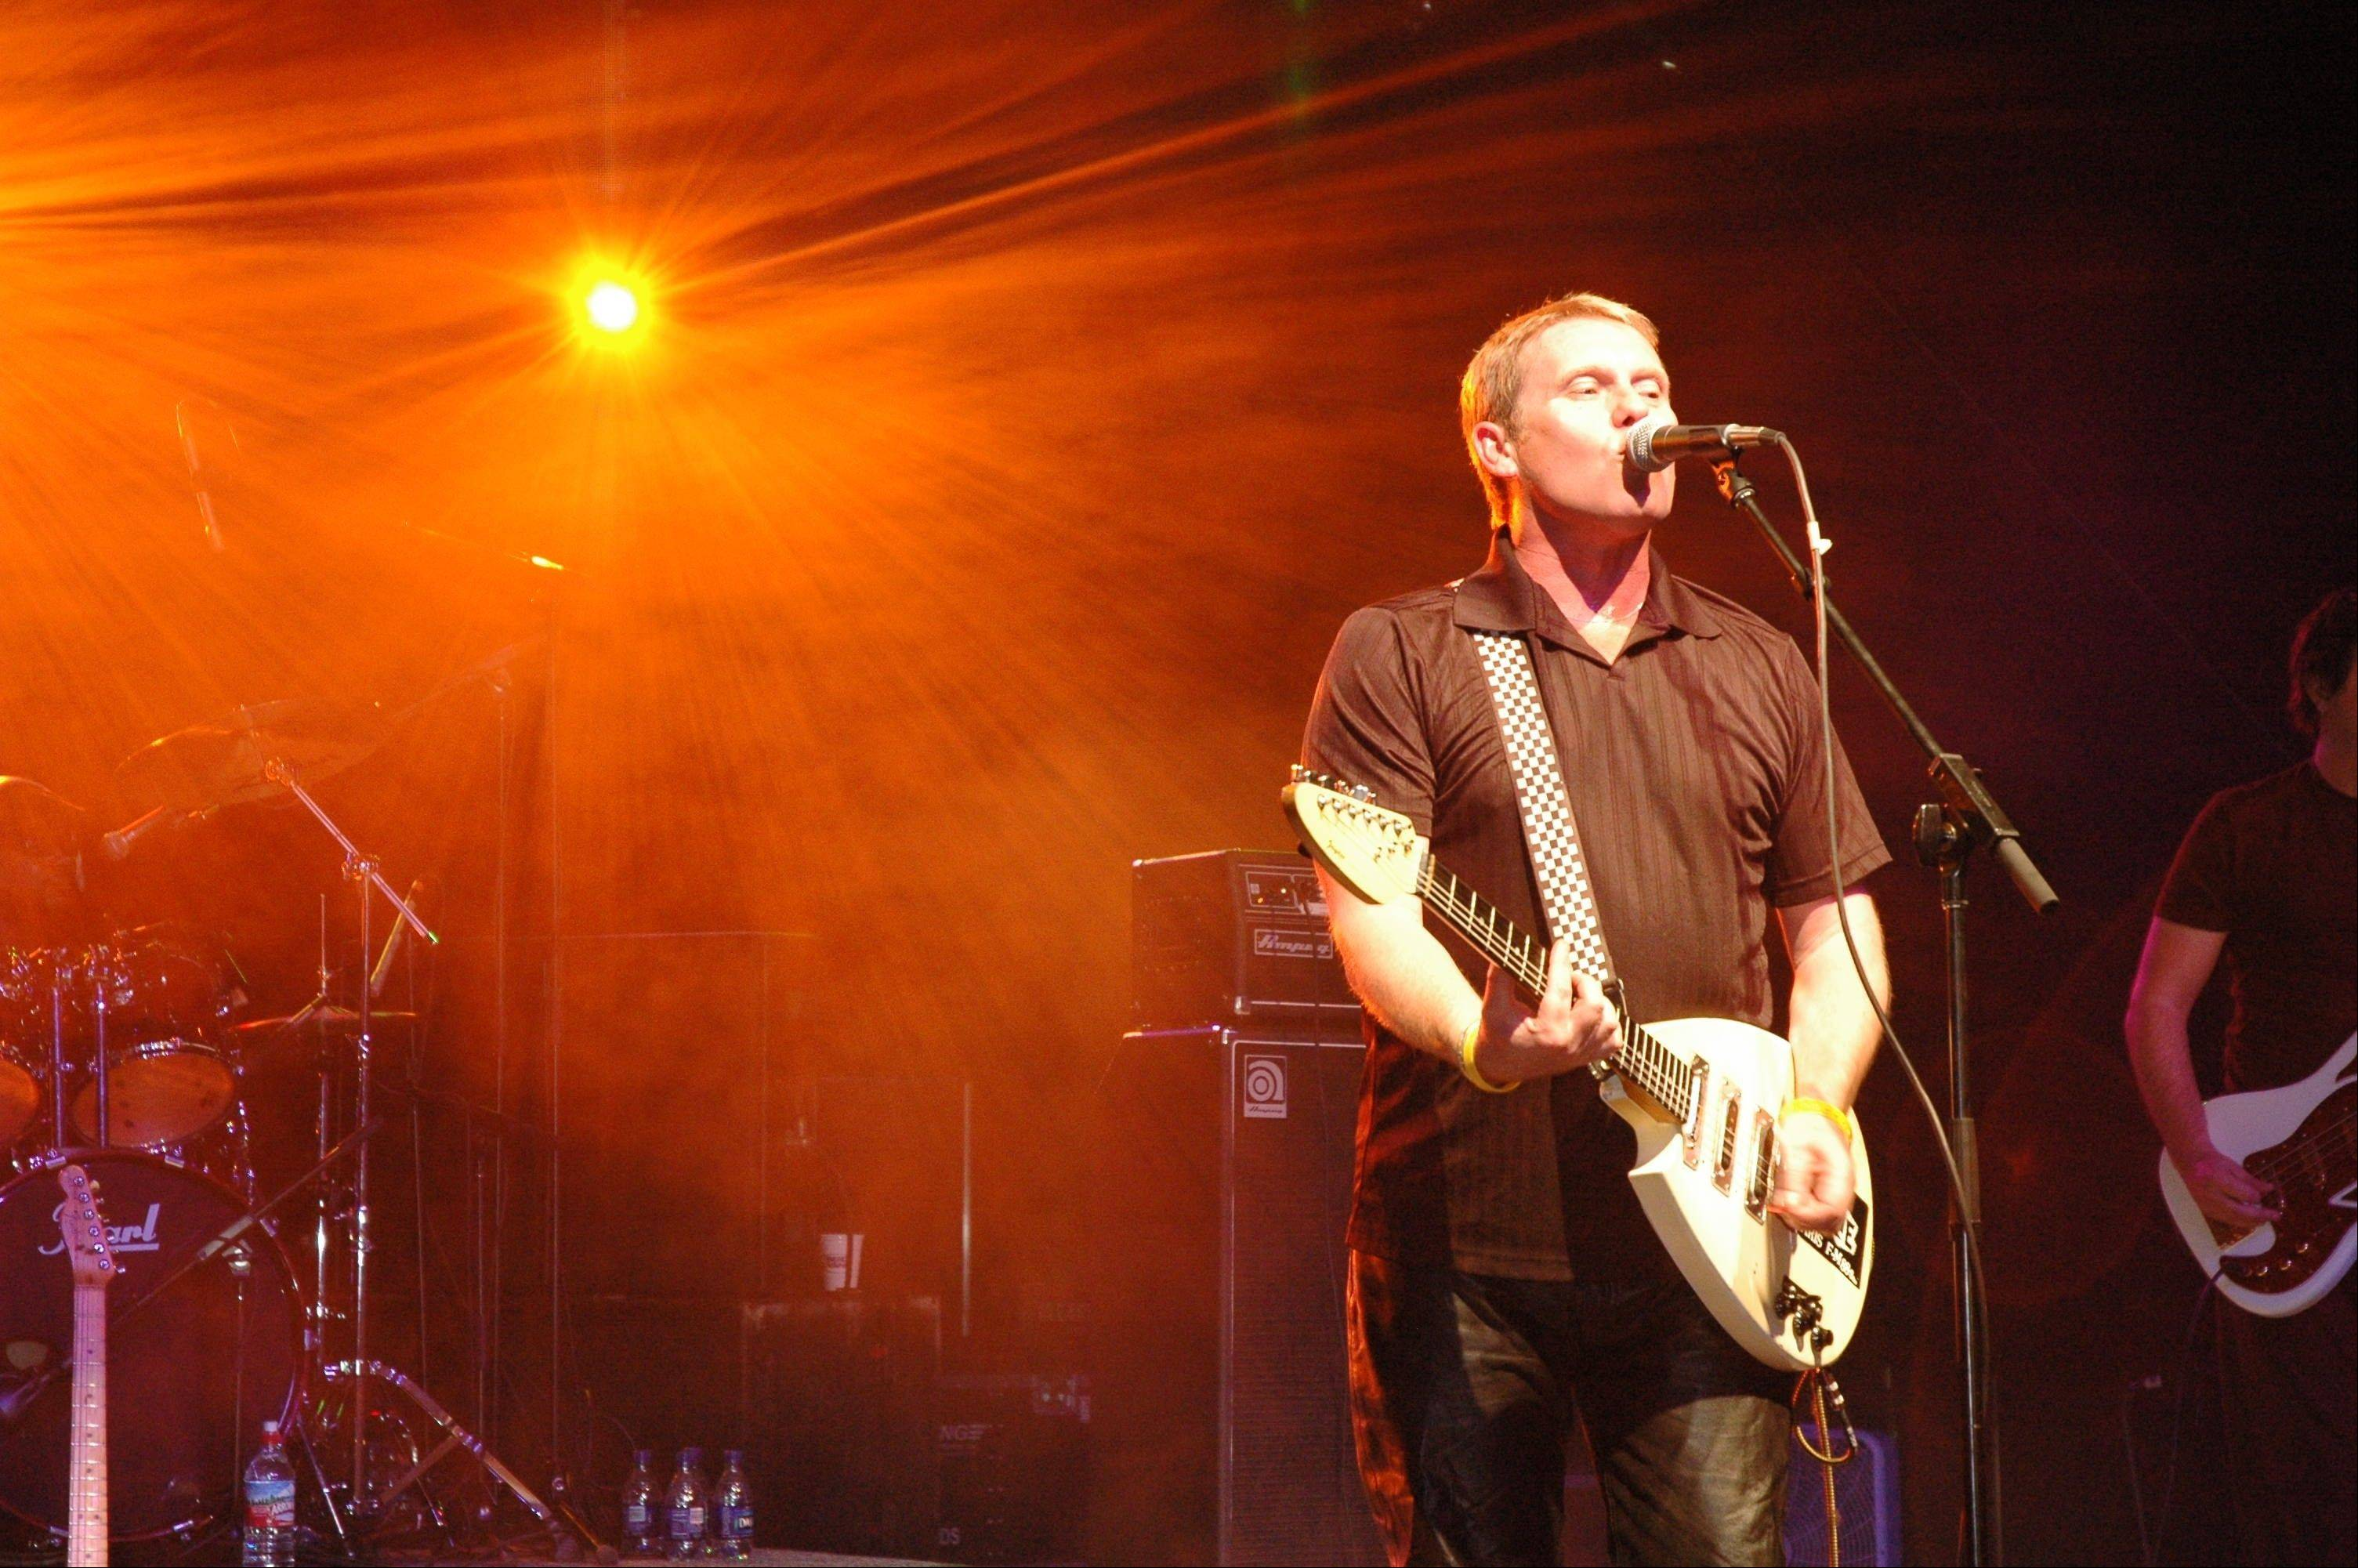 Dave Wakeling, lead singer of The English Beat, will try to get the crowds dancing during two suburban shows this weekend.